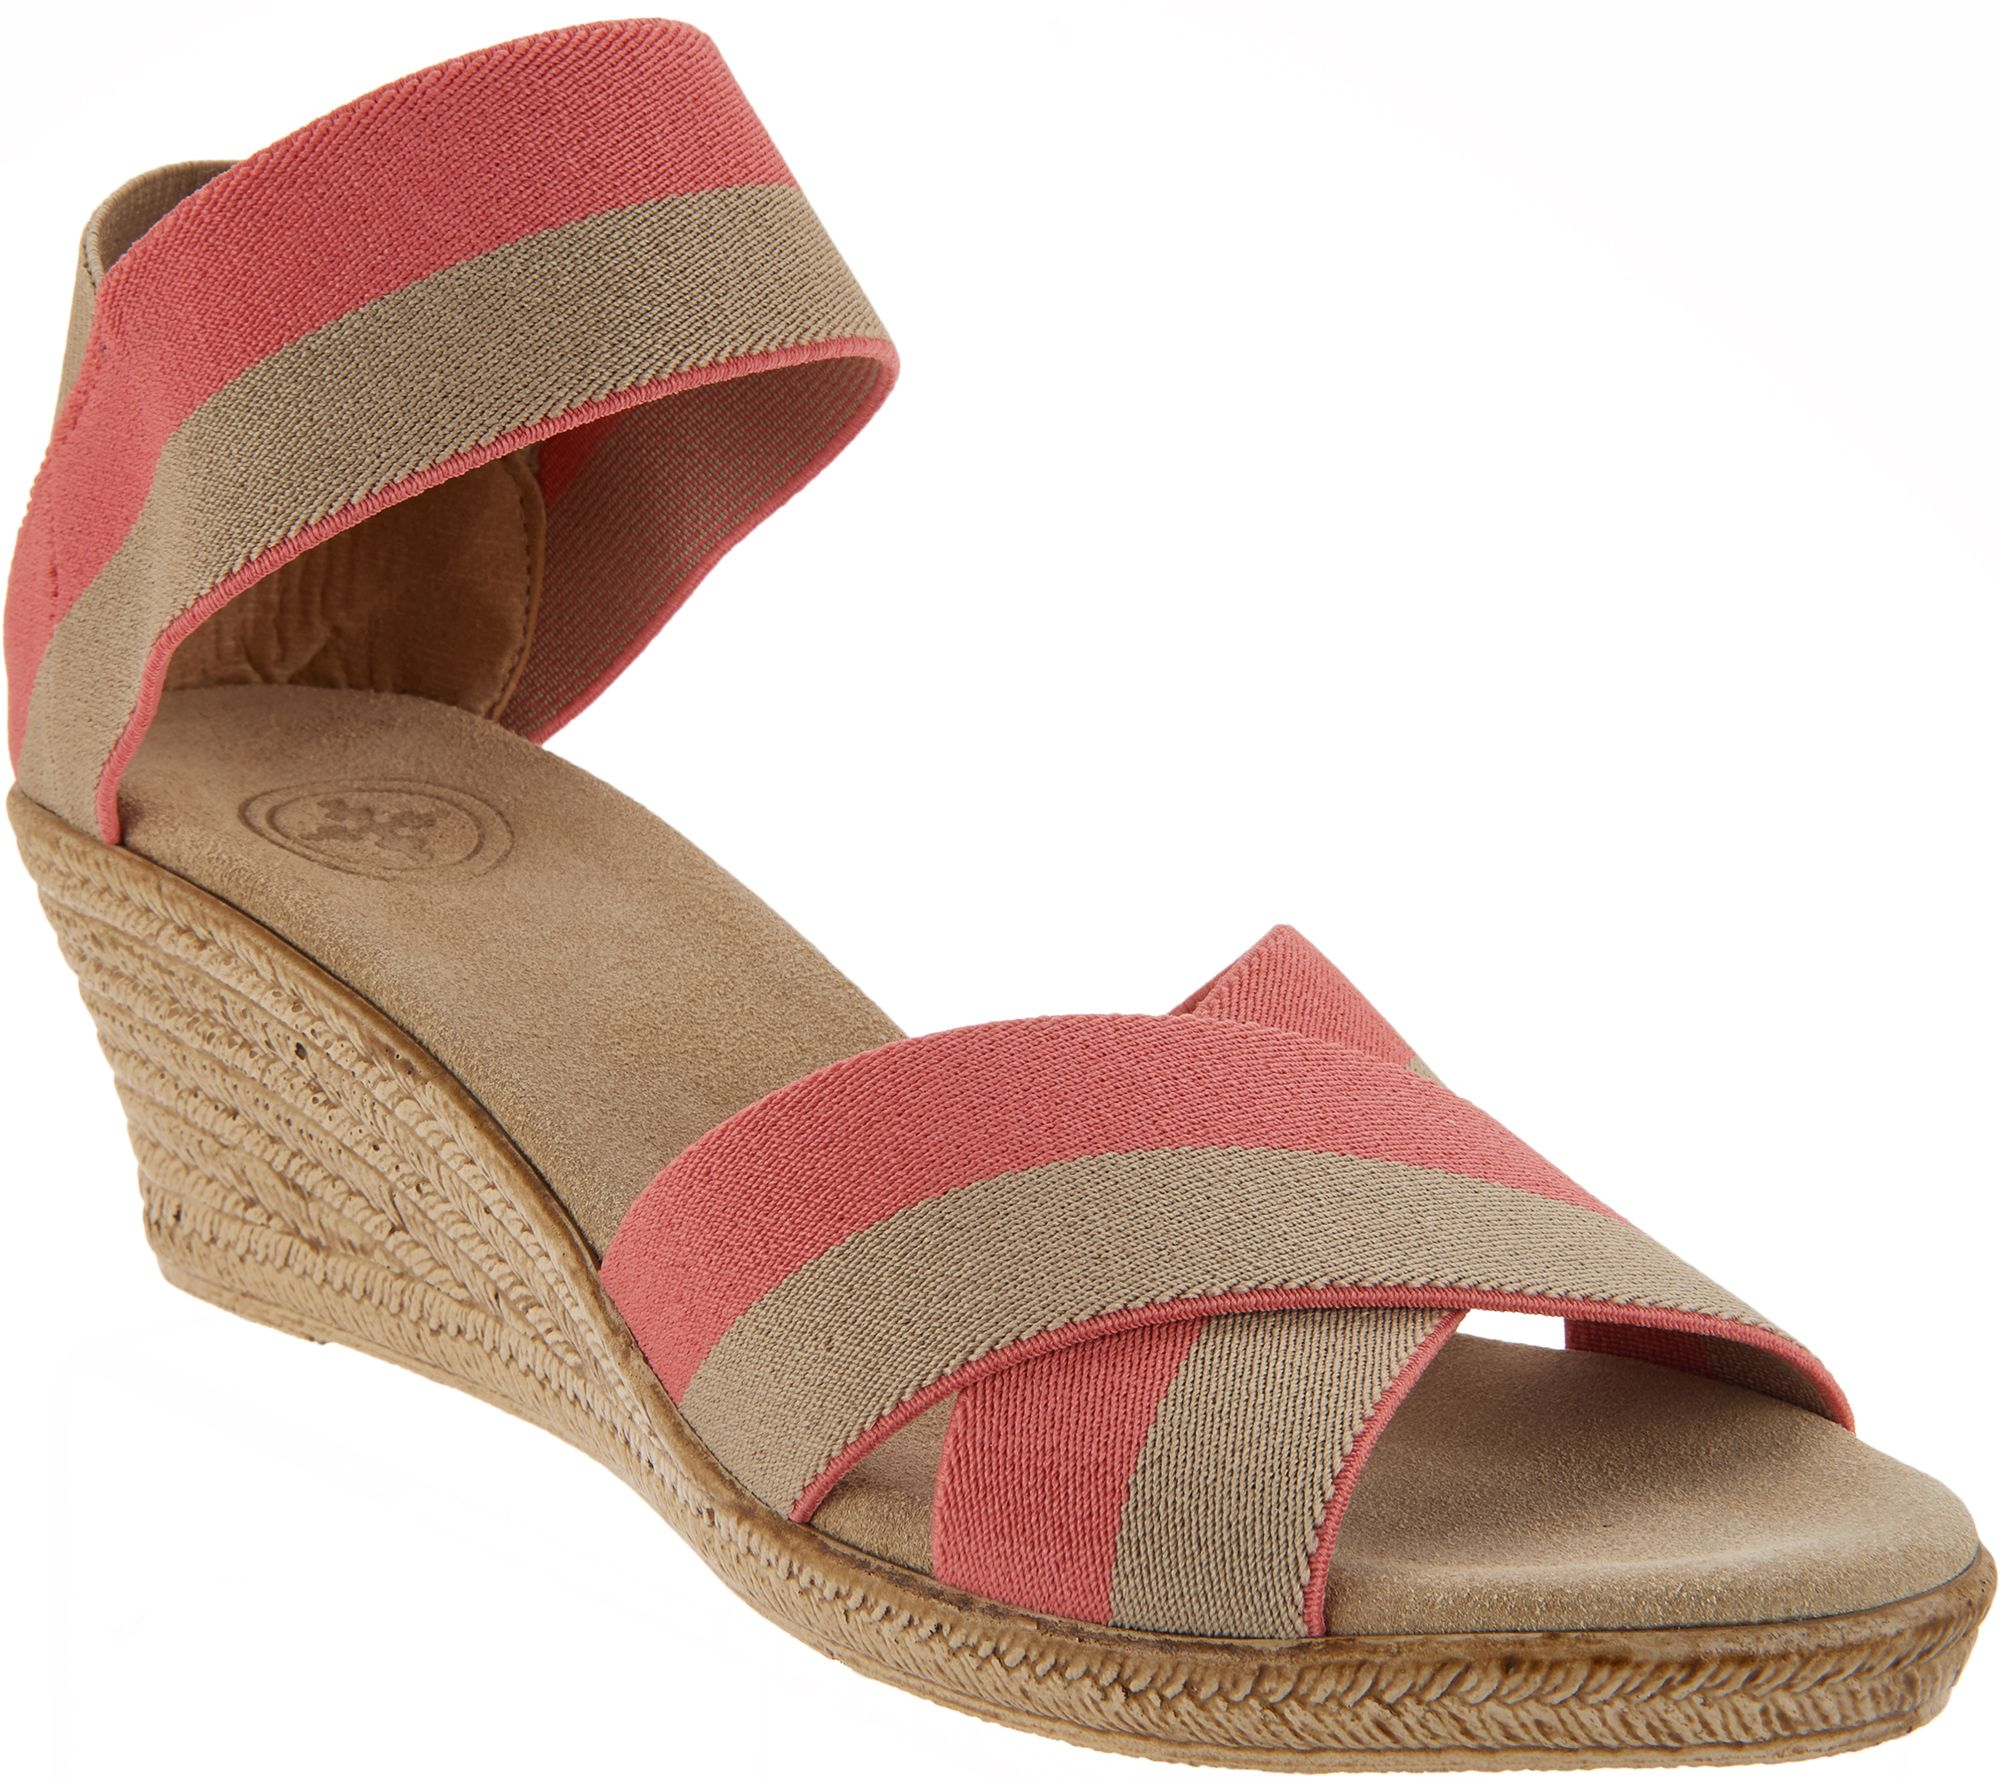 3038d1452886 Charleston Shoe Co. Stretch Wedge Sandals - Cannon - Page 1 — QVC.com